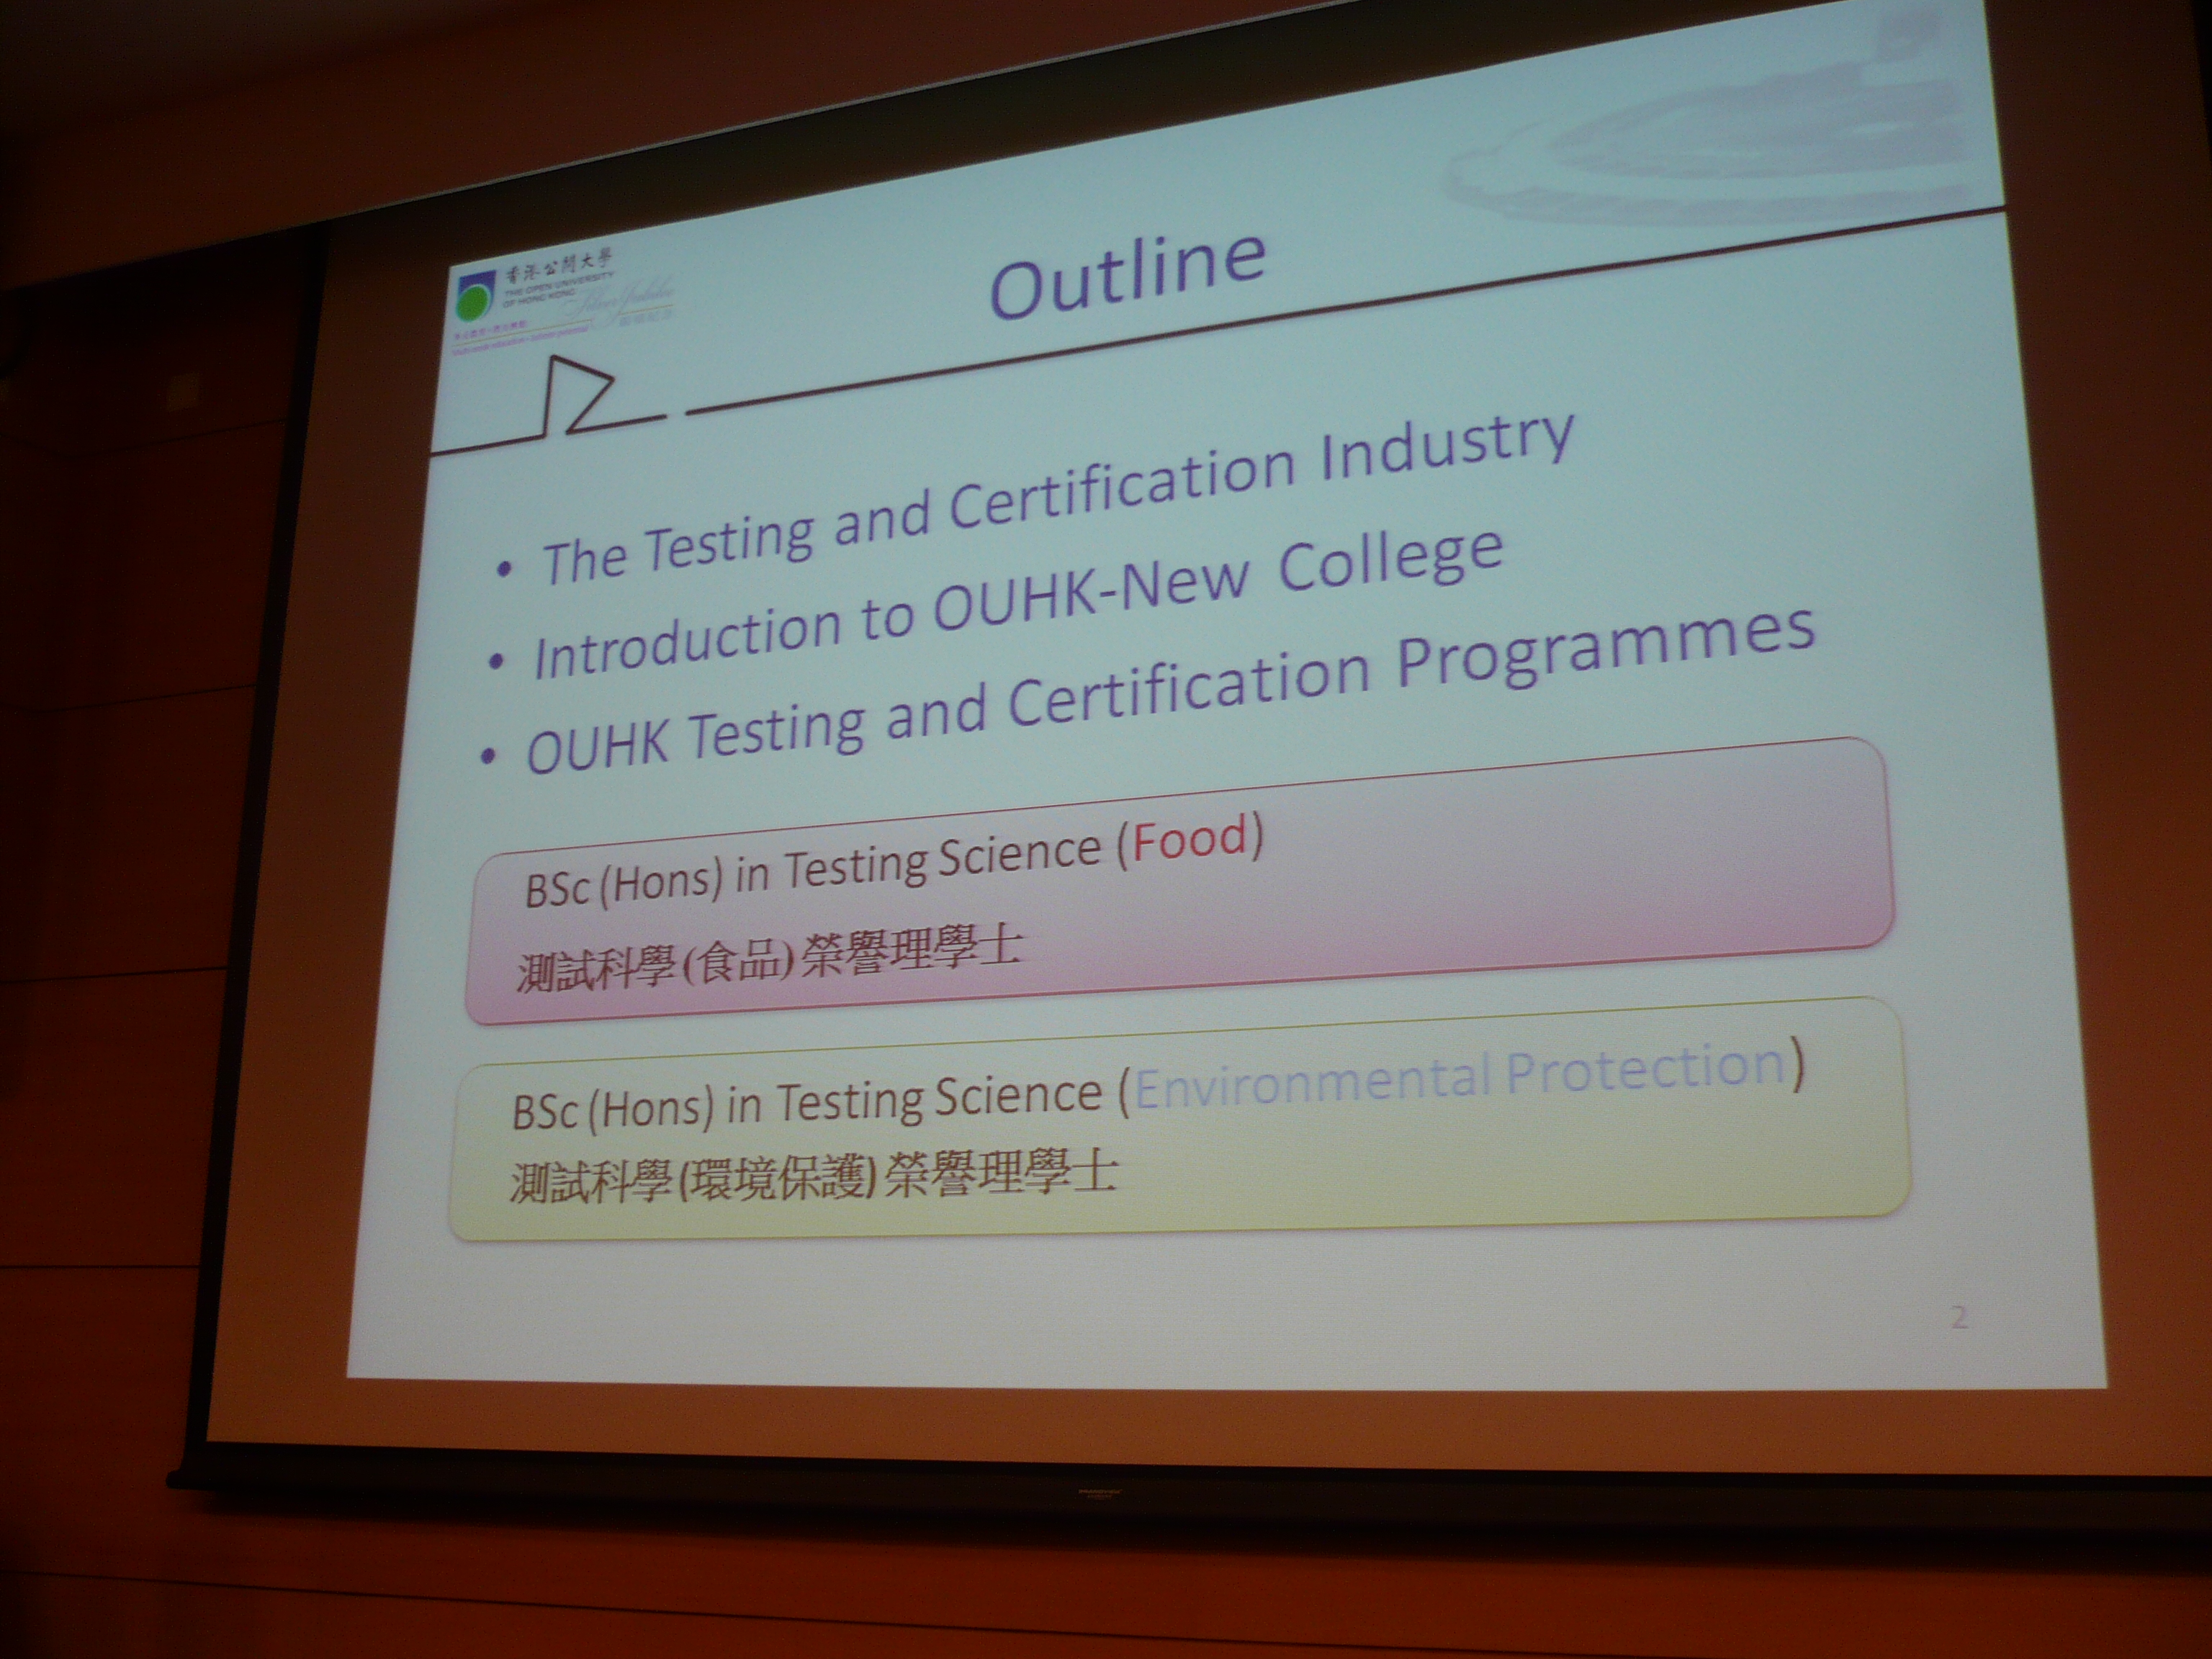 Seminar on the BSc in Testing Science/Testing and Certification Programmes (OUHK) - Photo - 1